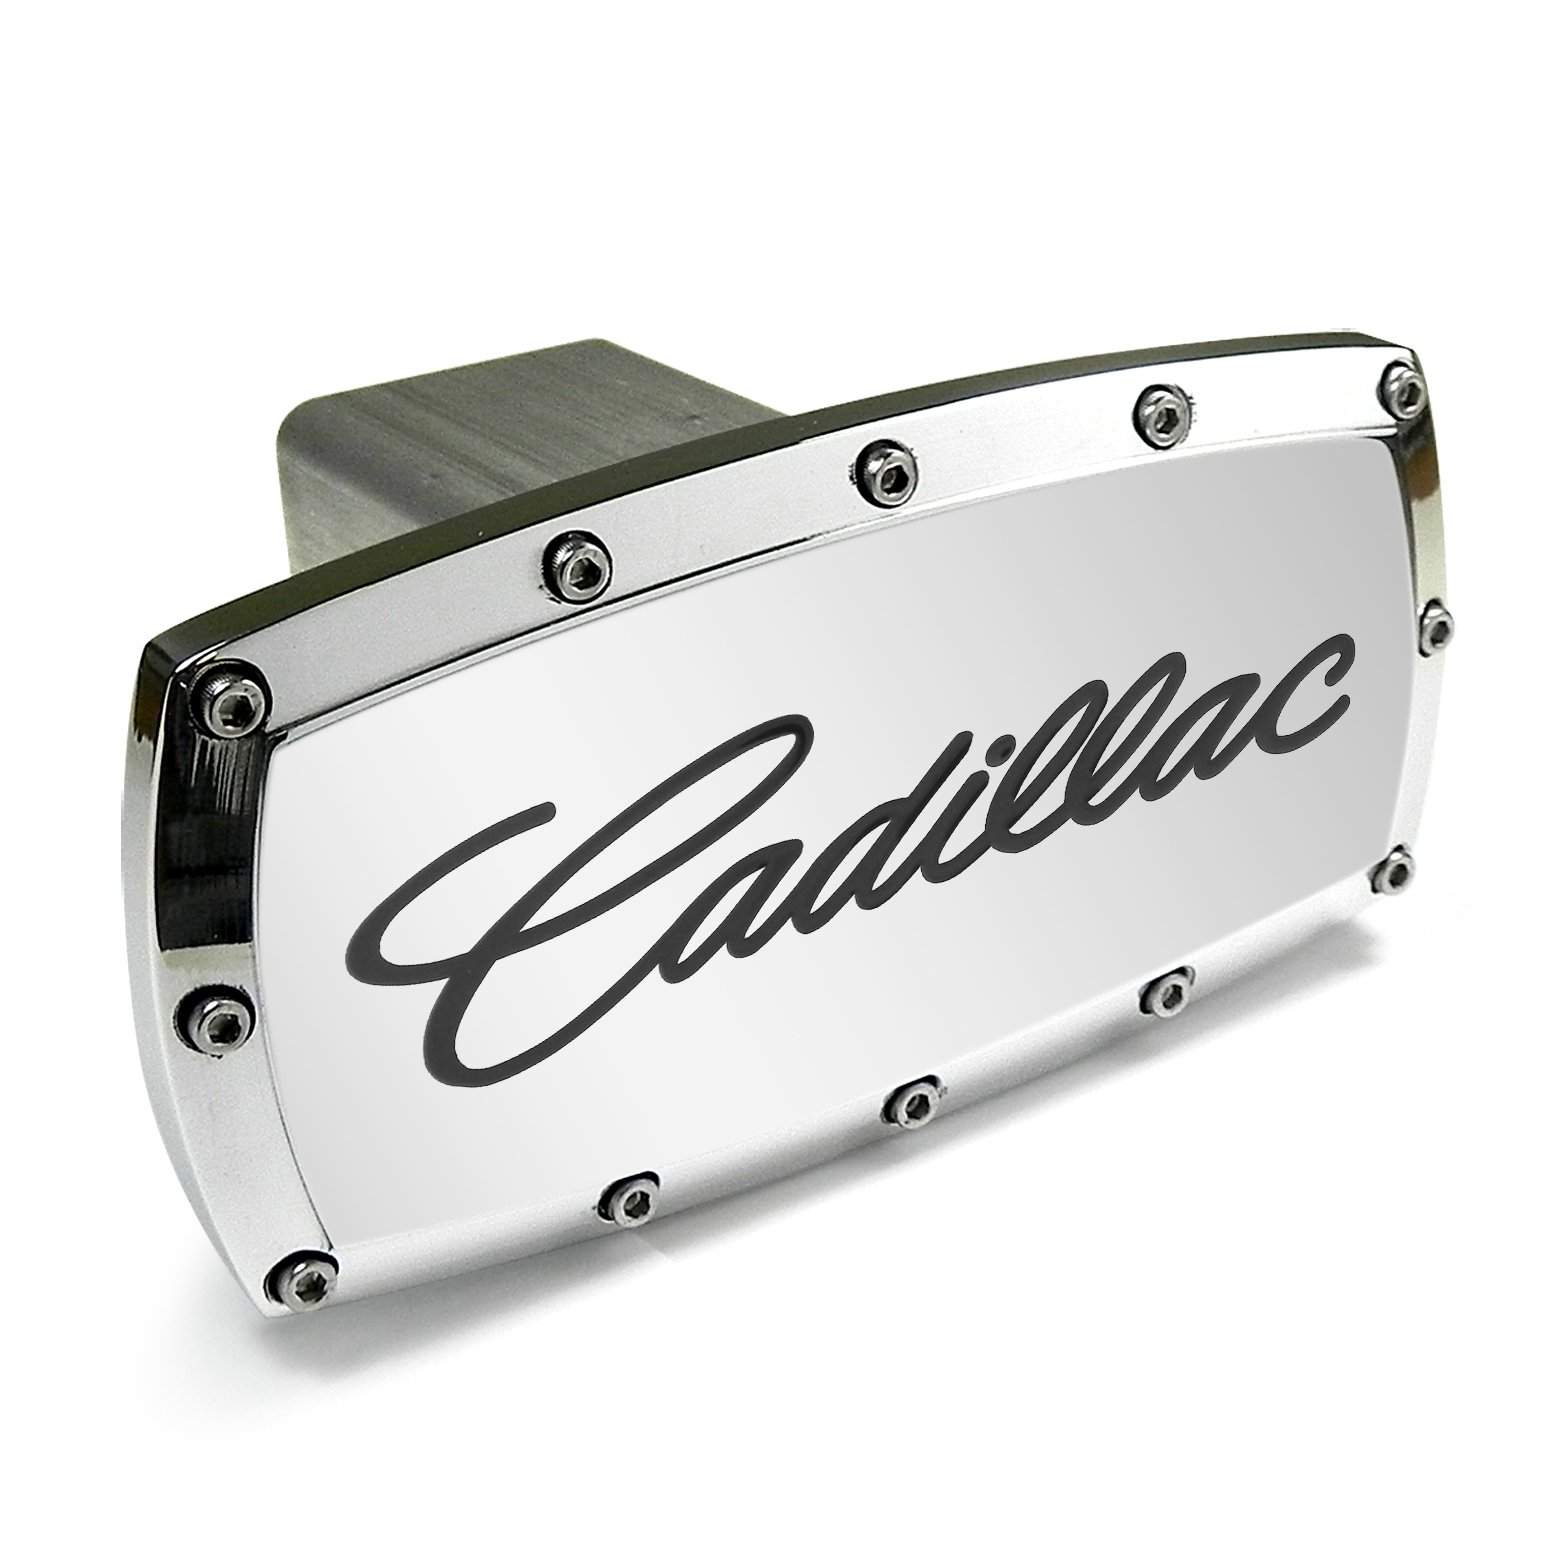 Cadillac Engraved Billet Aluminum Tow Hitch Cover by Elite Wheels & Tyres